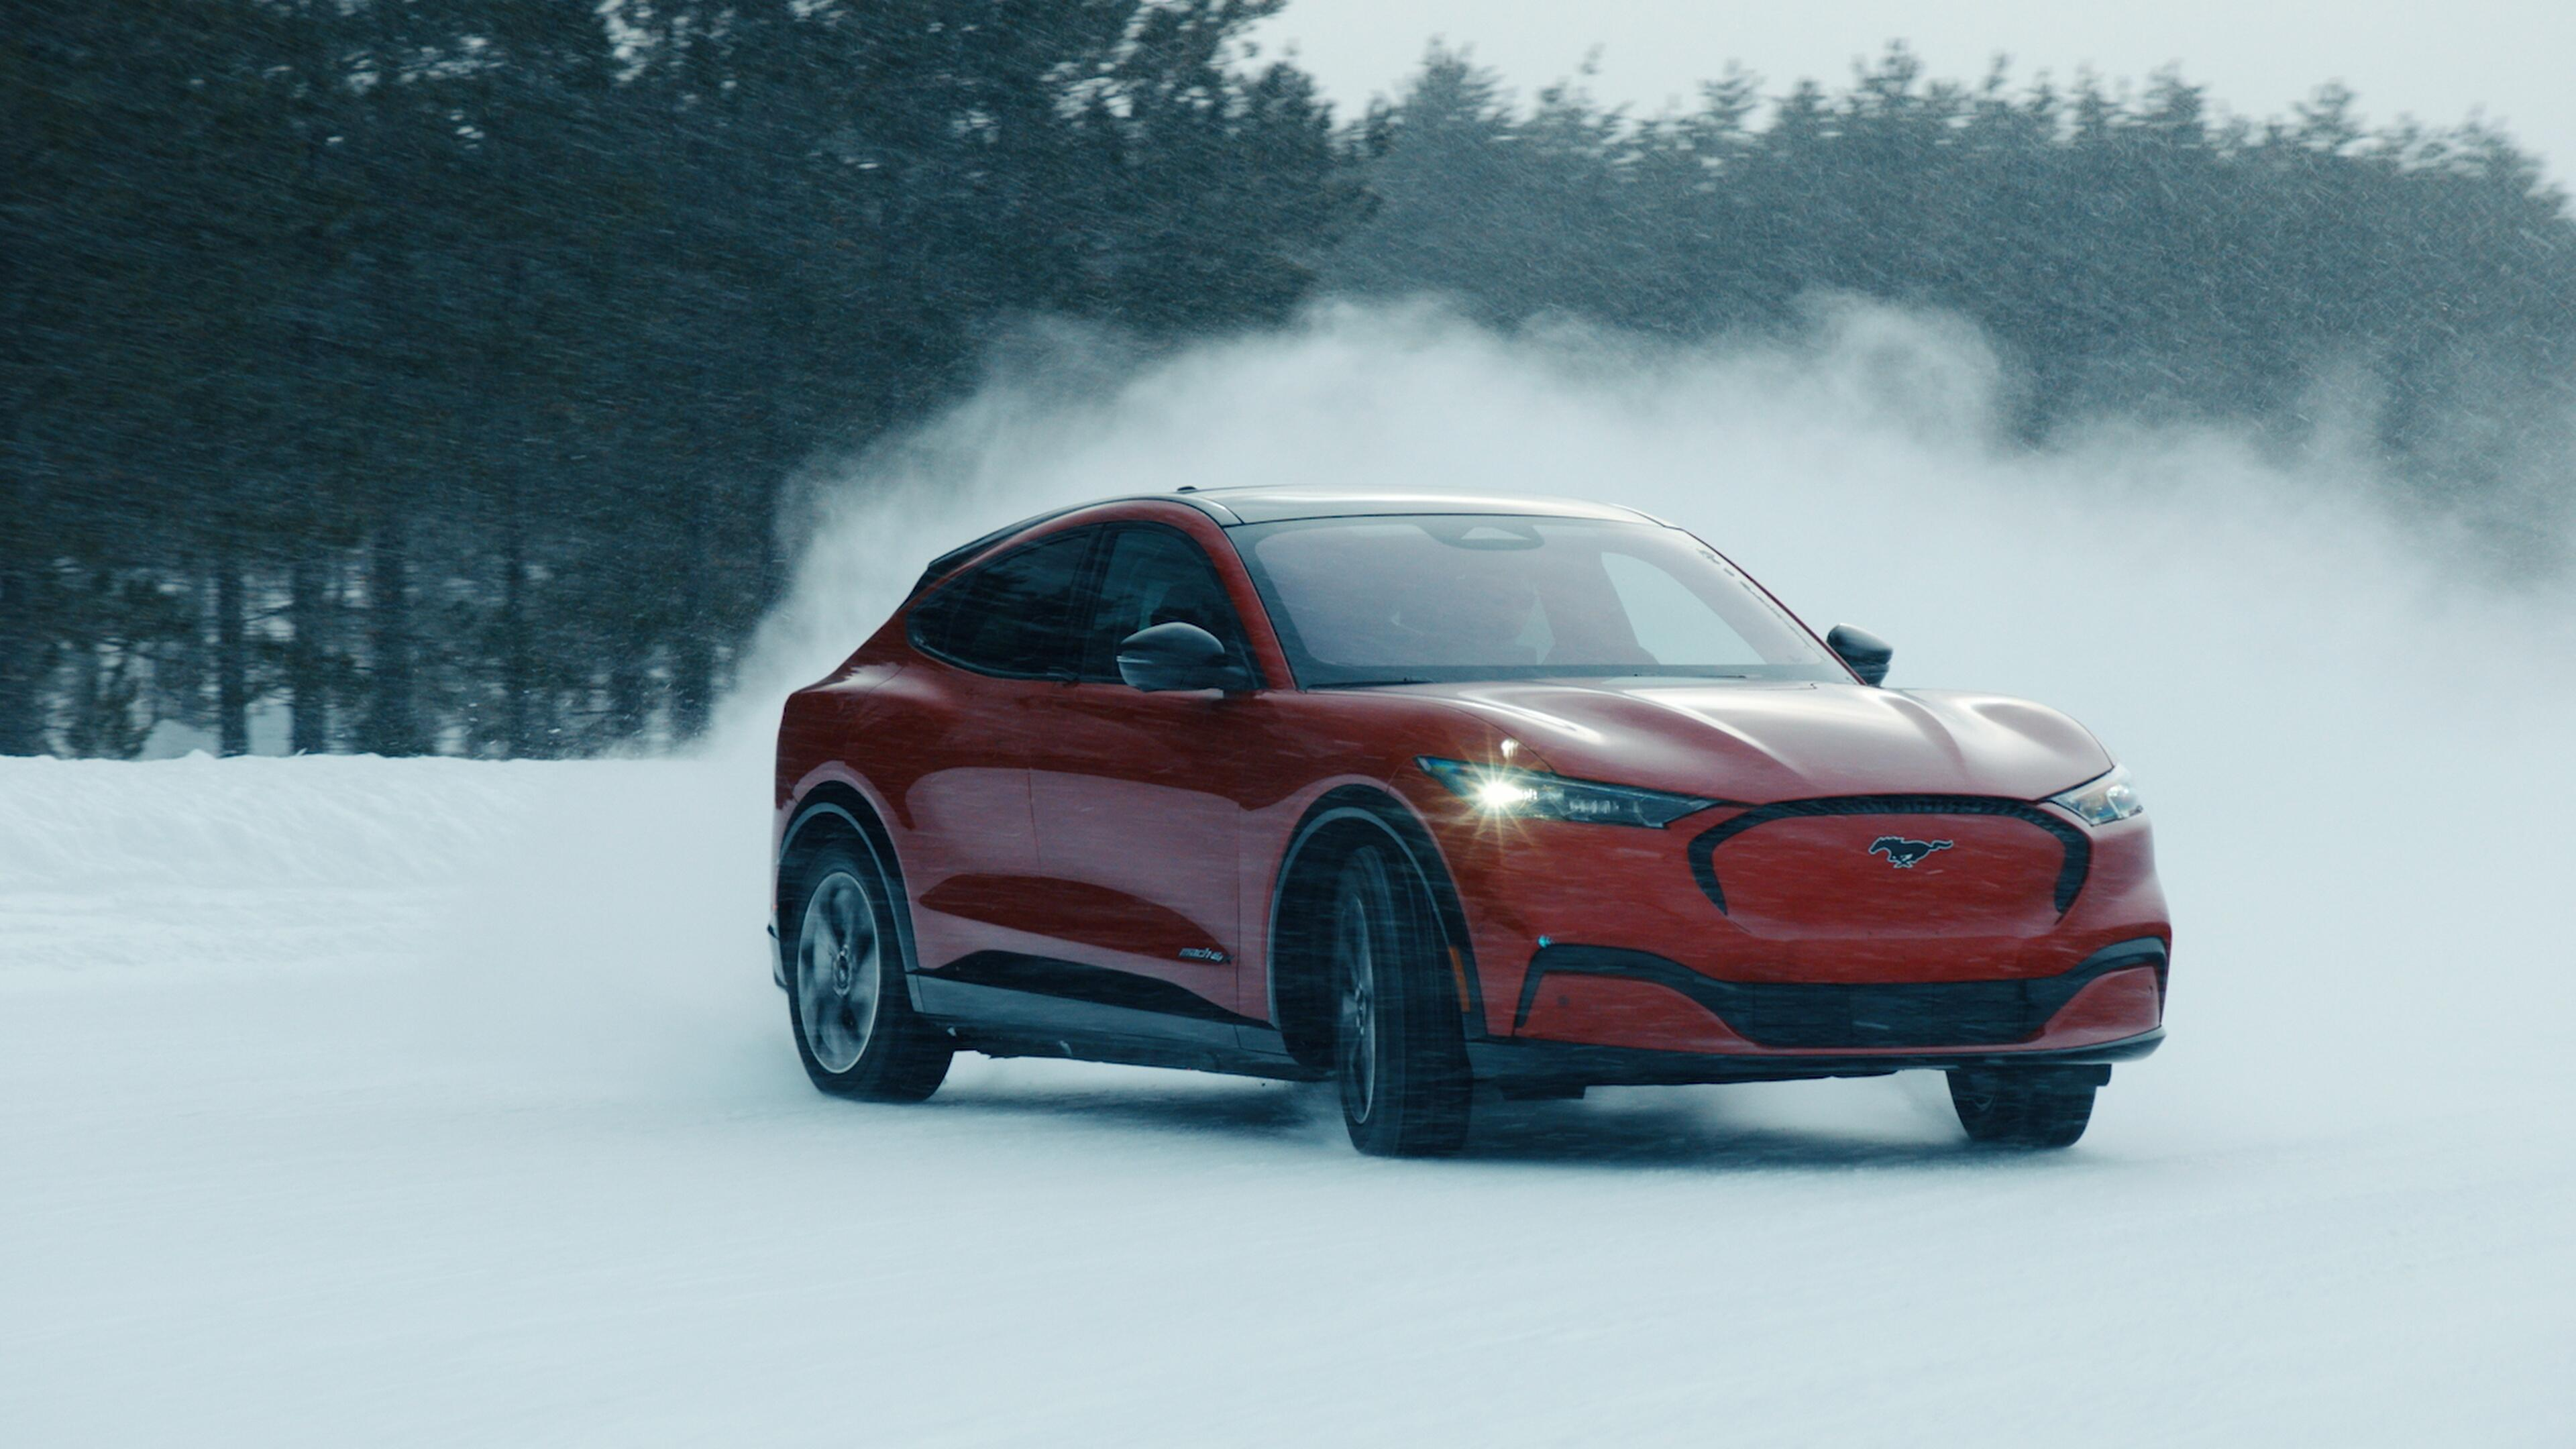 2021 Ford Mustang Mach-E winter test